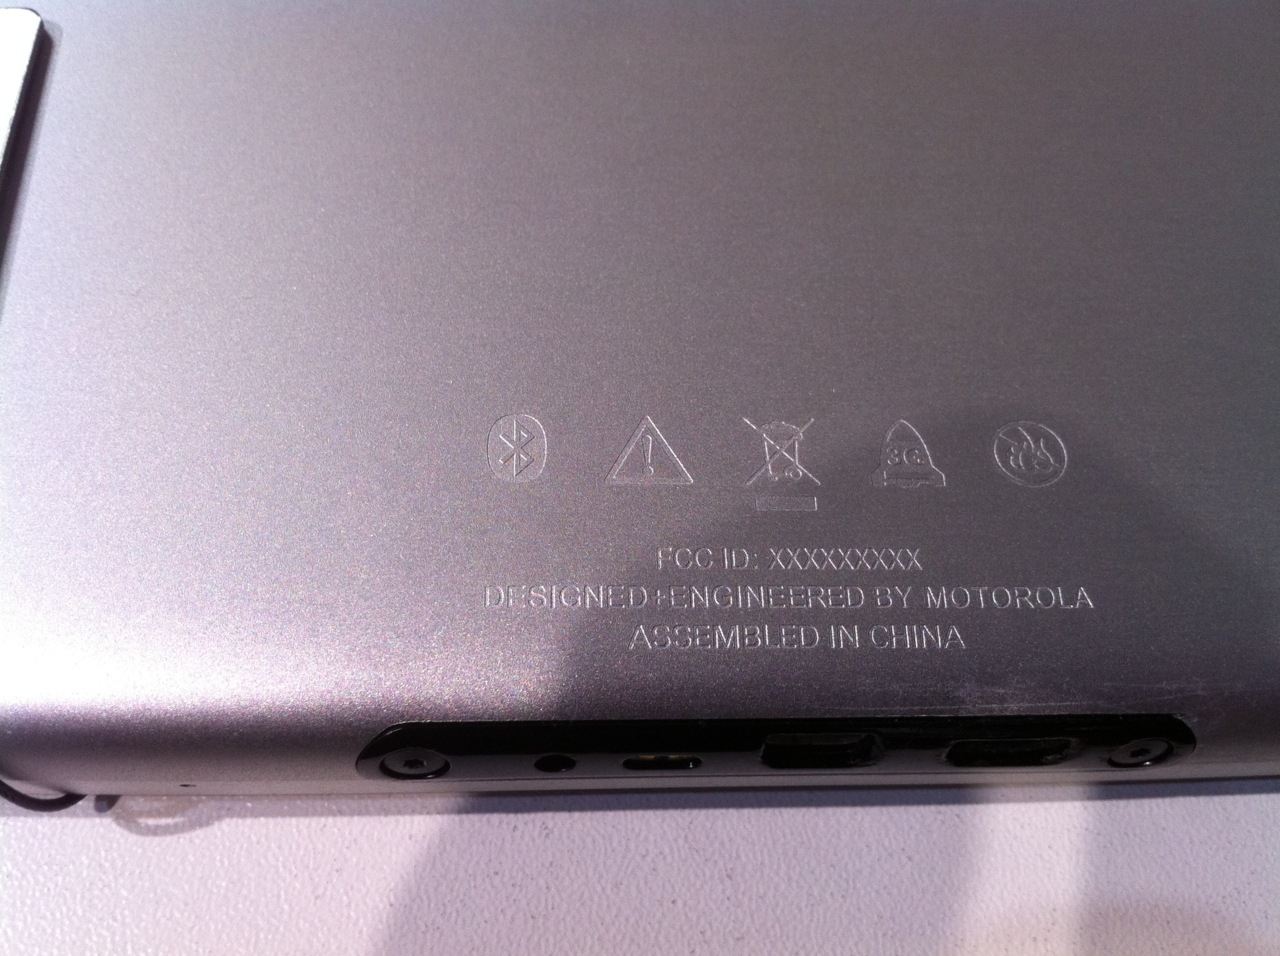 "On the back of the prerelease Motorola Xoom tablet at MWC: ""Designed + Engineered by Motorola, Assembled in China"".  Sound familiar?"